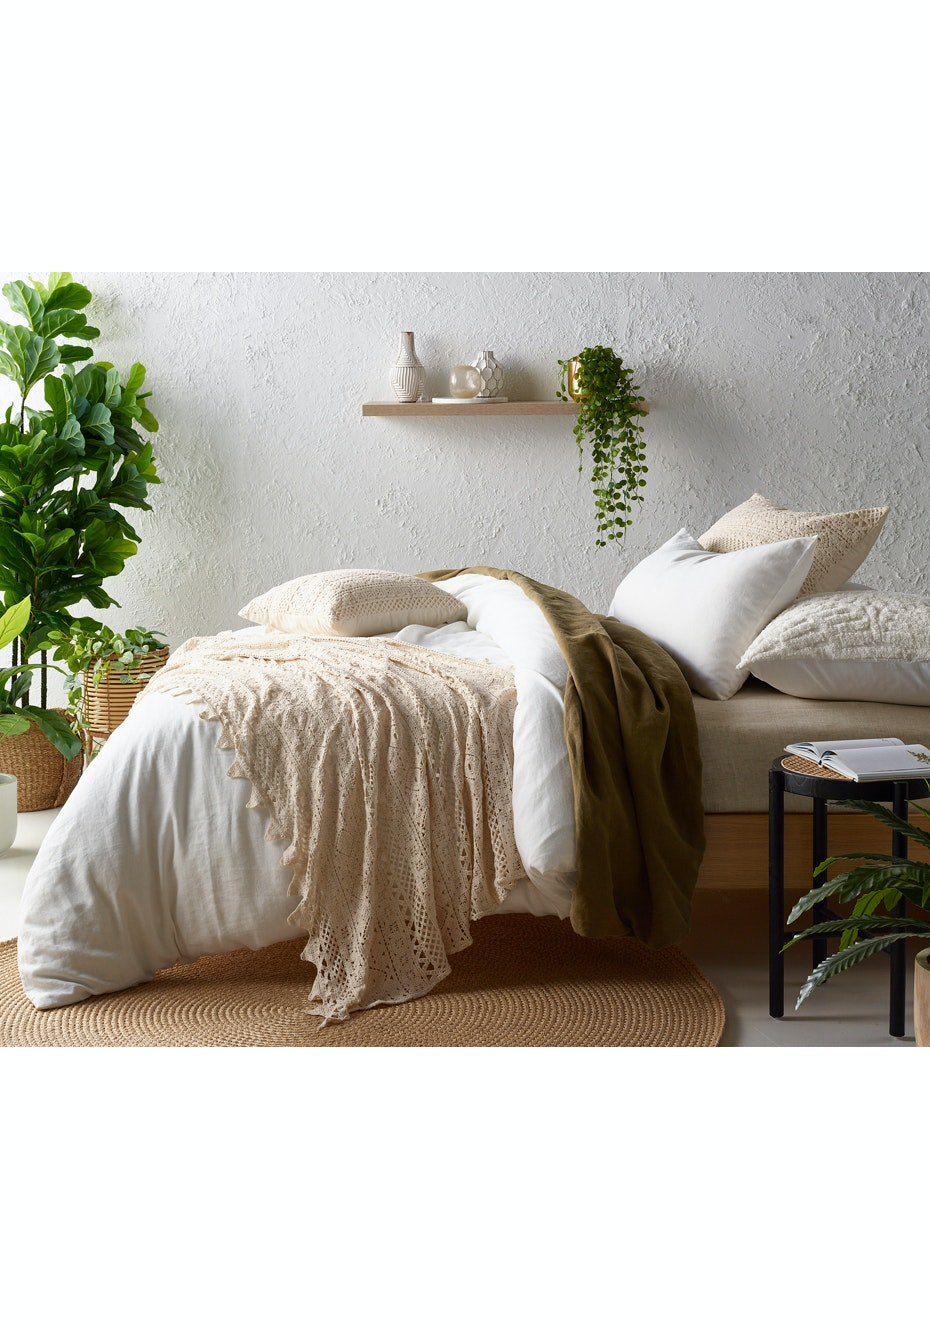 Tenille Natural Vintage Crochet Lace Bed Runner Throw The New Boho Bedroom Ships Free Onceit